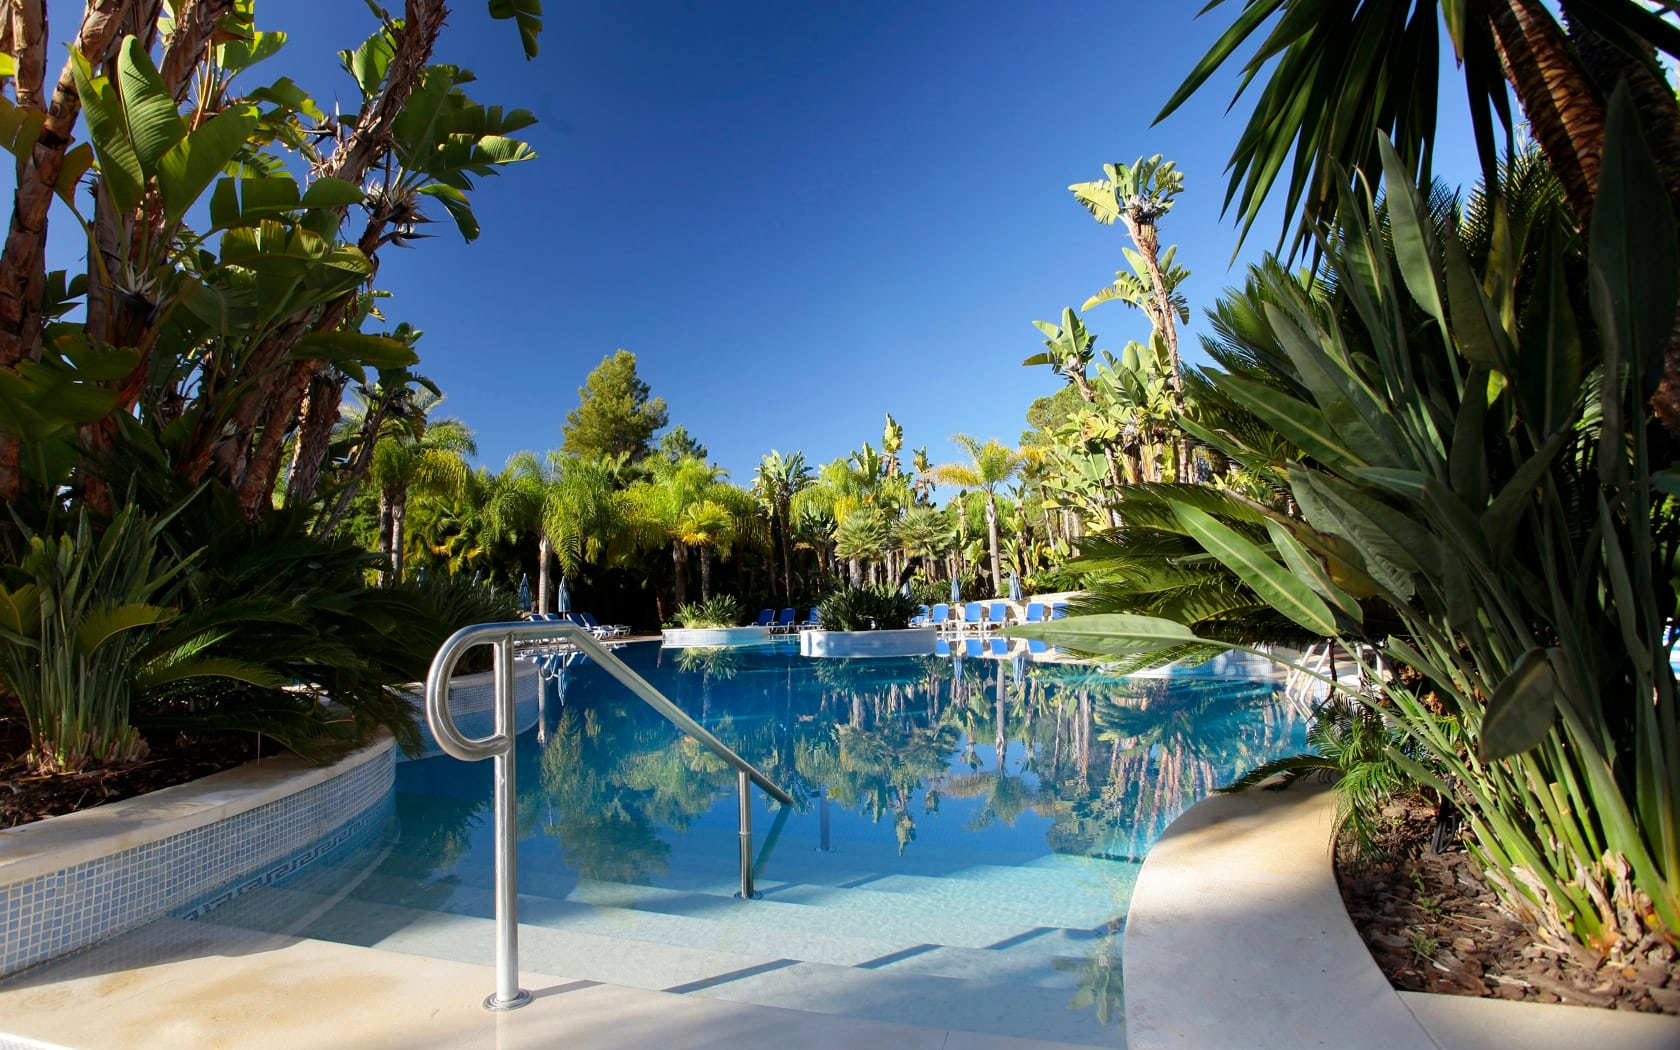 single parent 5 star holidays Single parent holidays in the uk and abroad friendly, fun single parent groups the widest choice of locations, holidays and breaks ideal for single parent families.